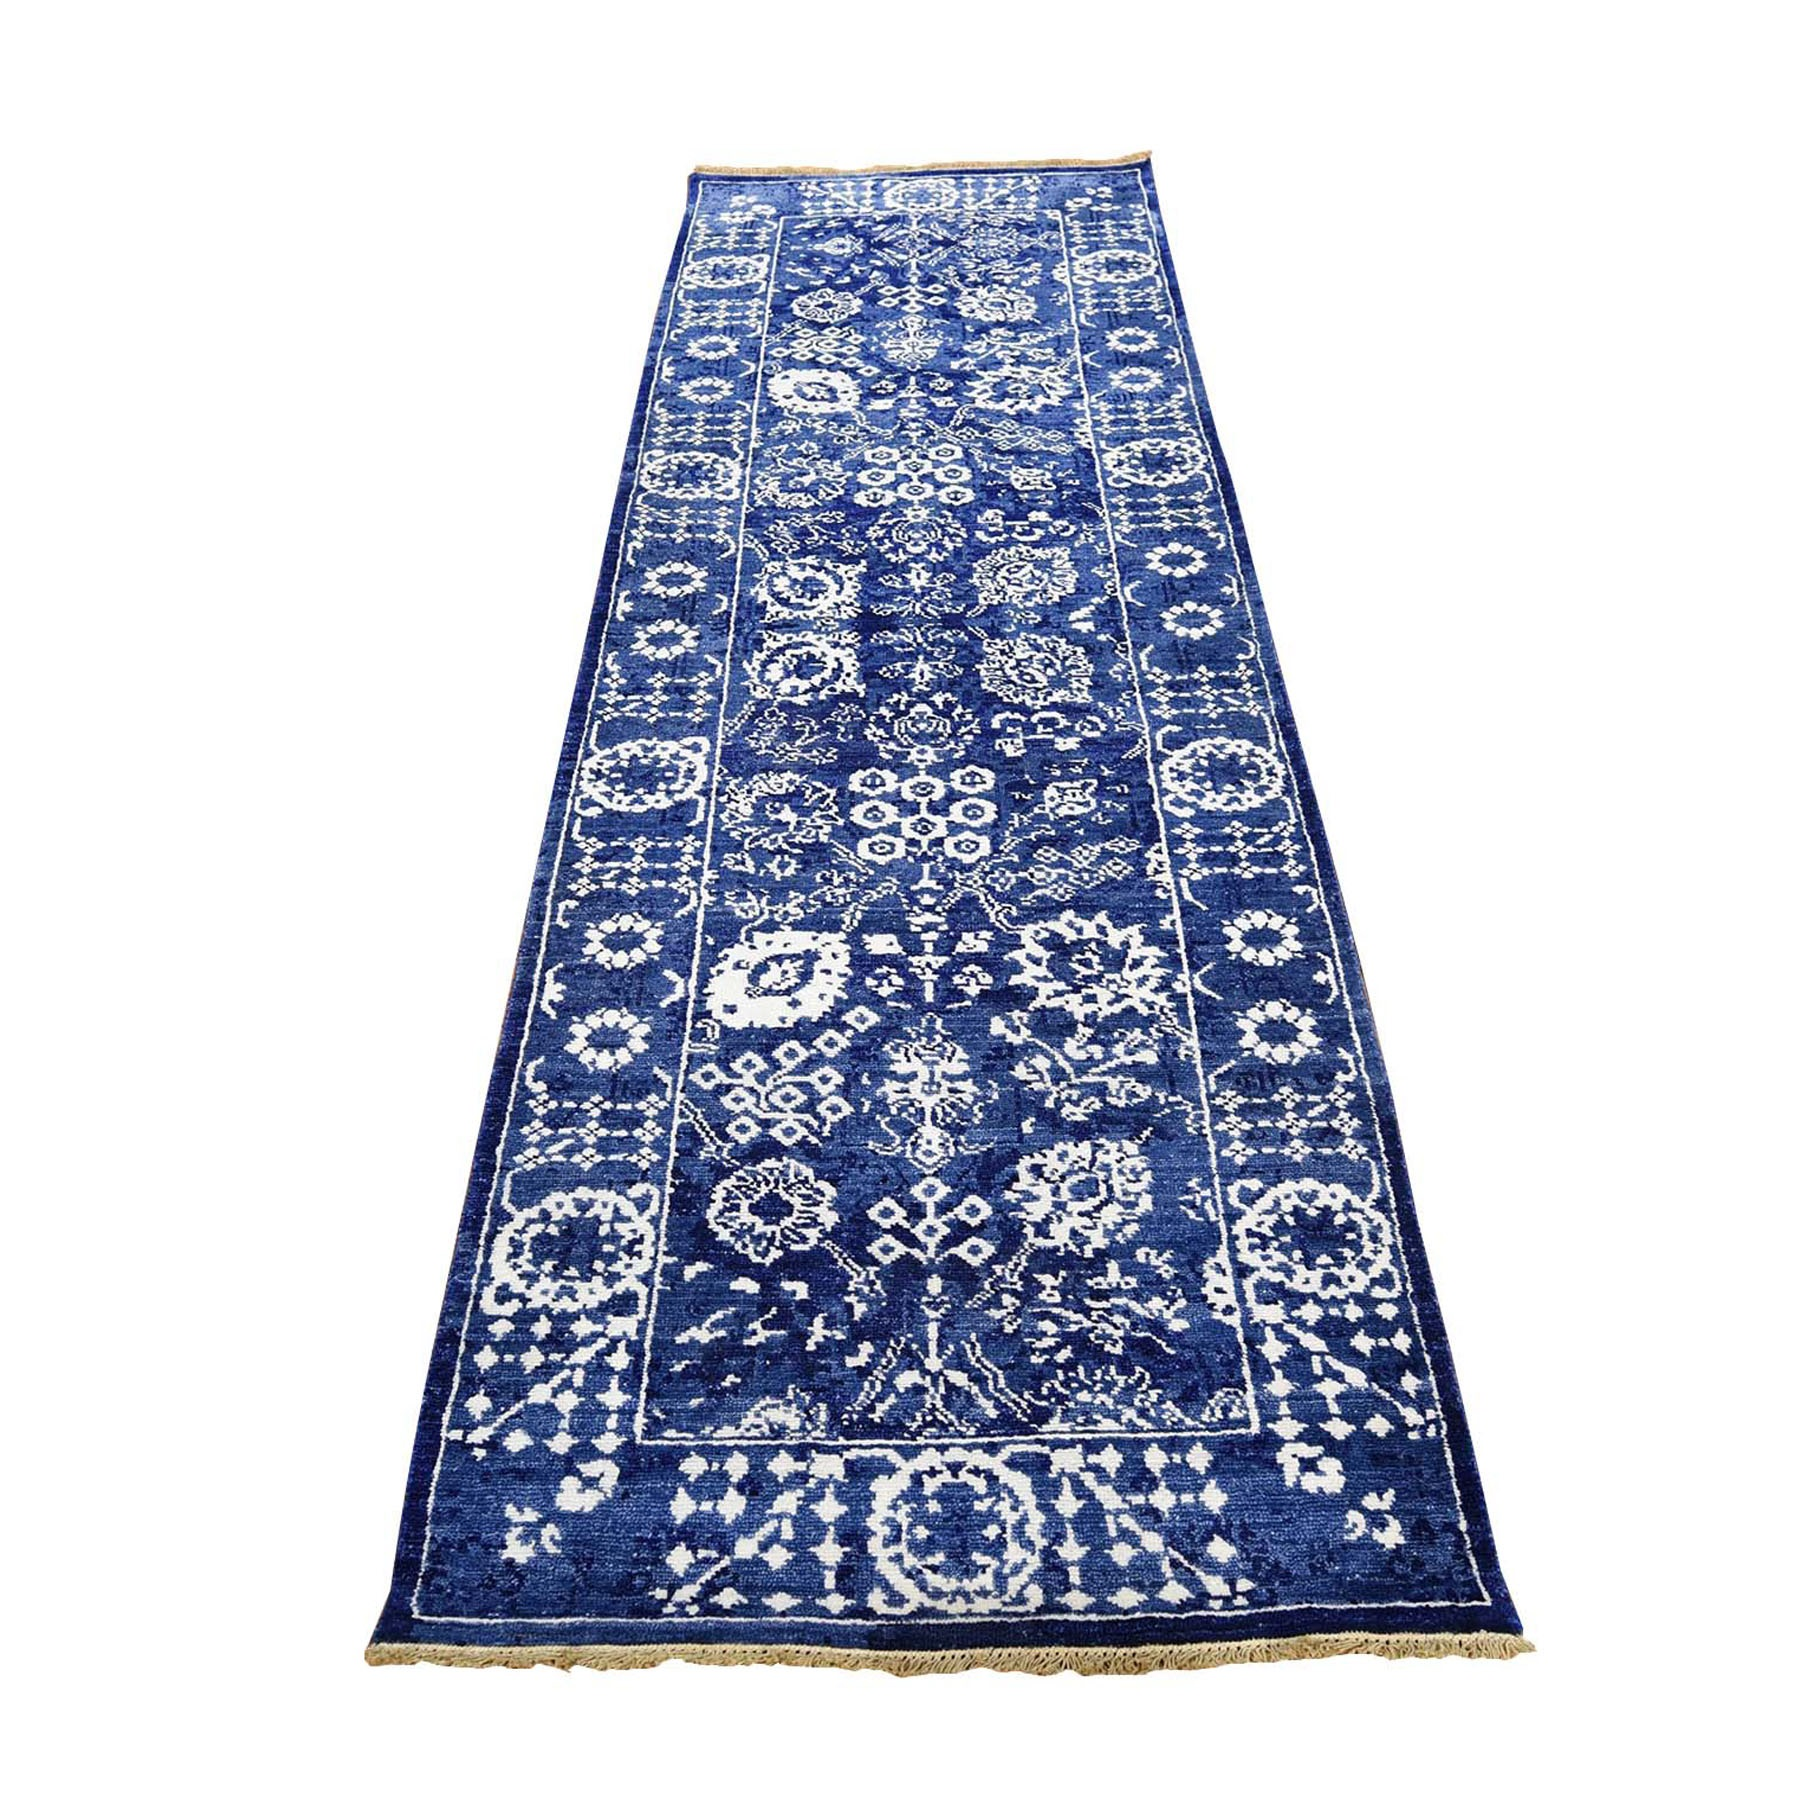 "2'8""x8'2"" Blue Wool And Silk Tone On Tone Tabriz Runner Hand Knotted Oriental Rug"